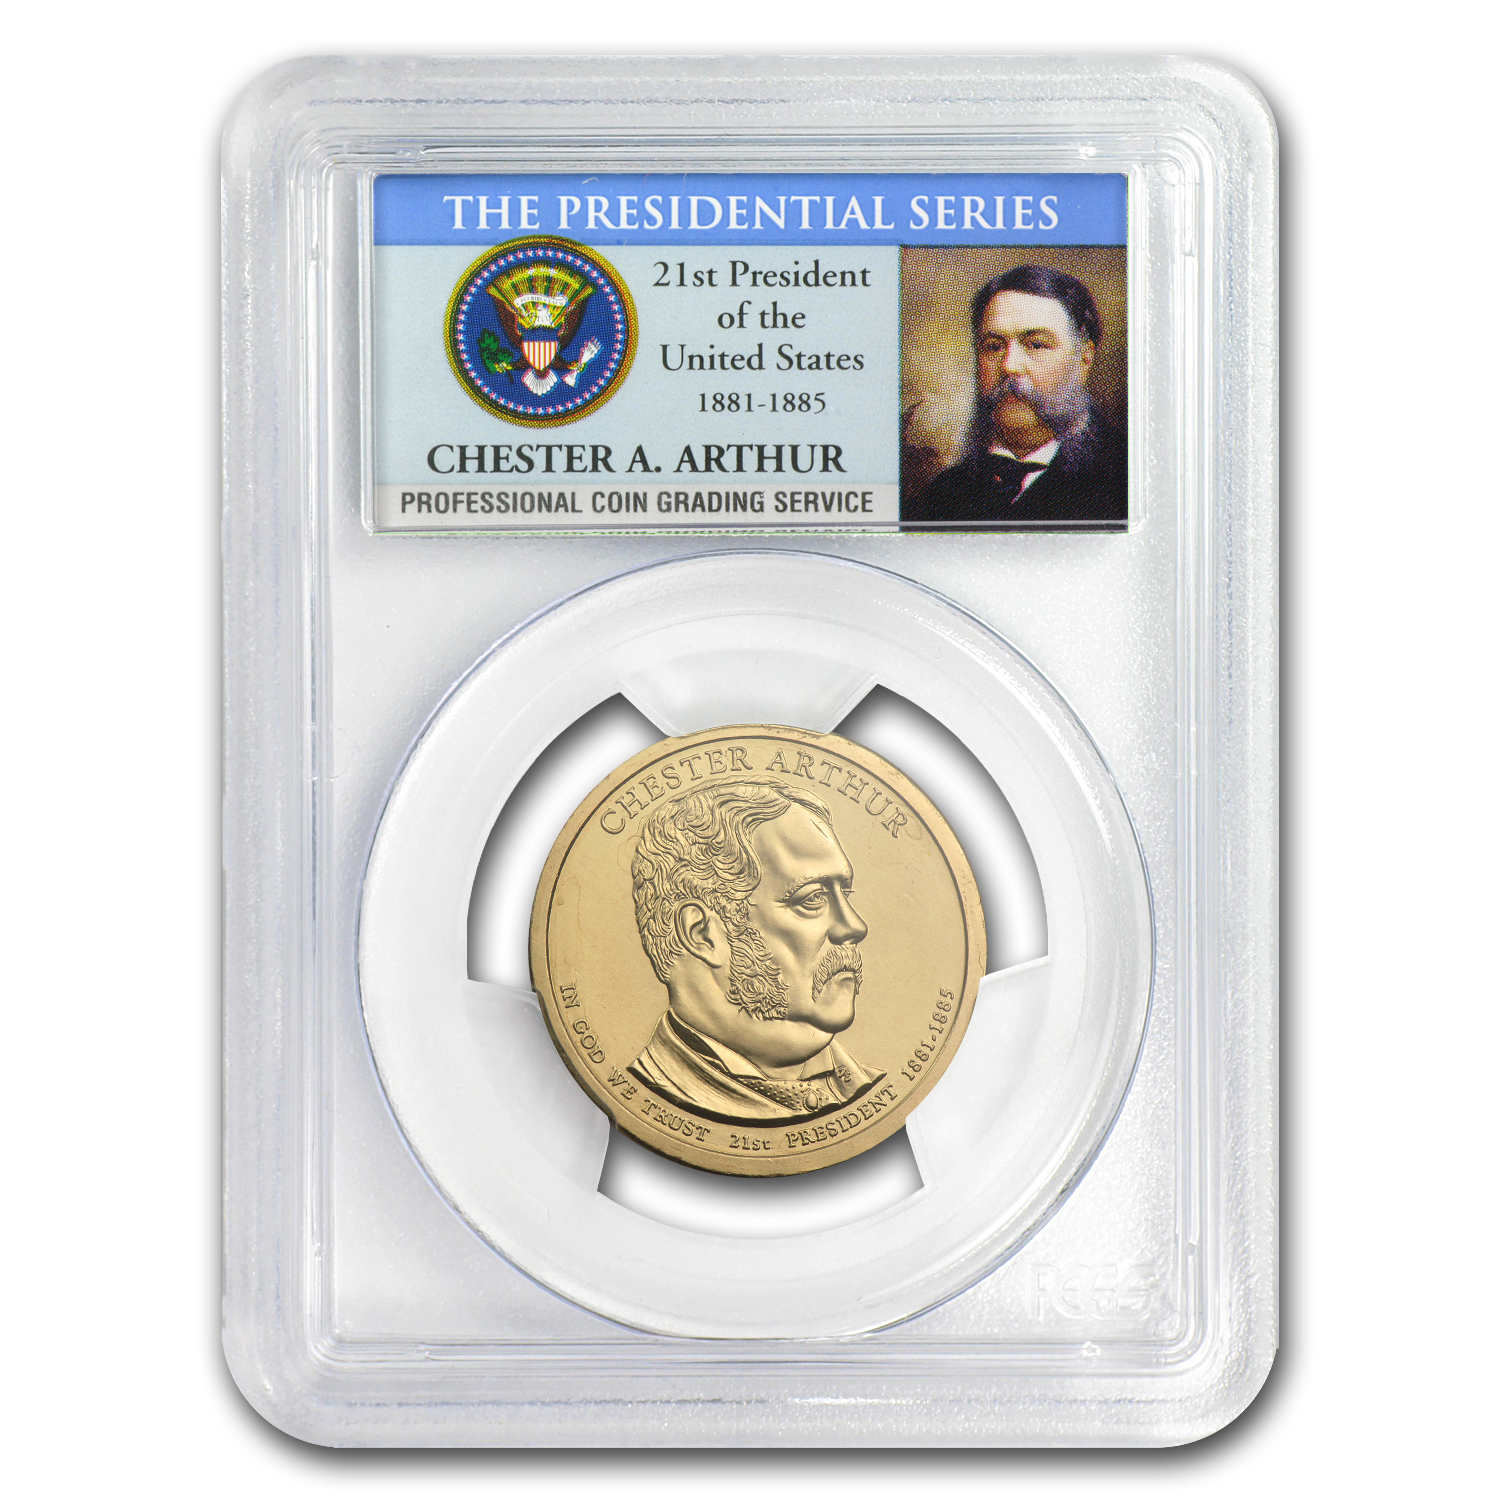 2012-P Chester Arthur Position A Presidential Dollar MS-67 PCGS